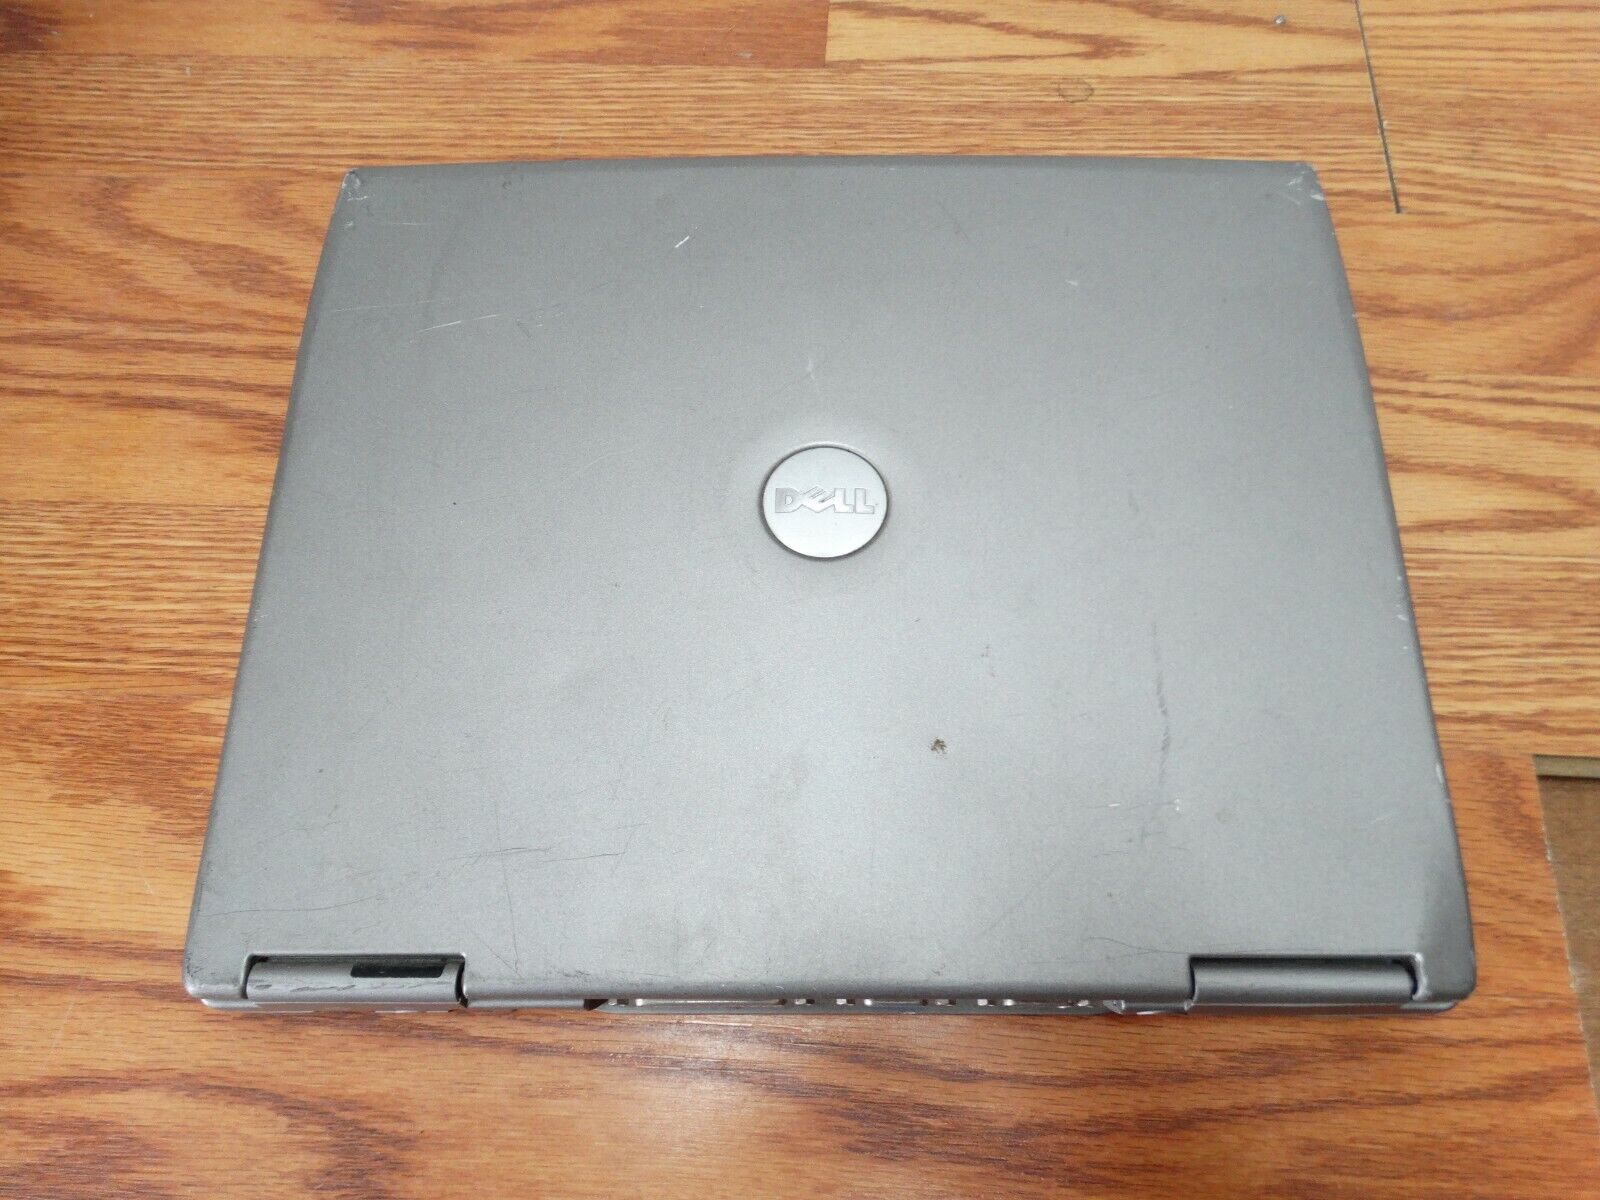 Dell Latitude D600 - Model # PP05L...For Parts - Not Working